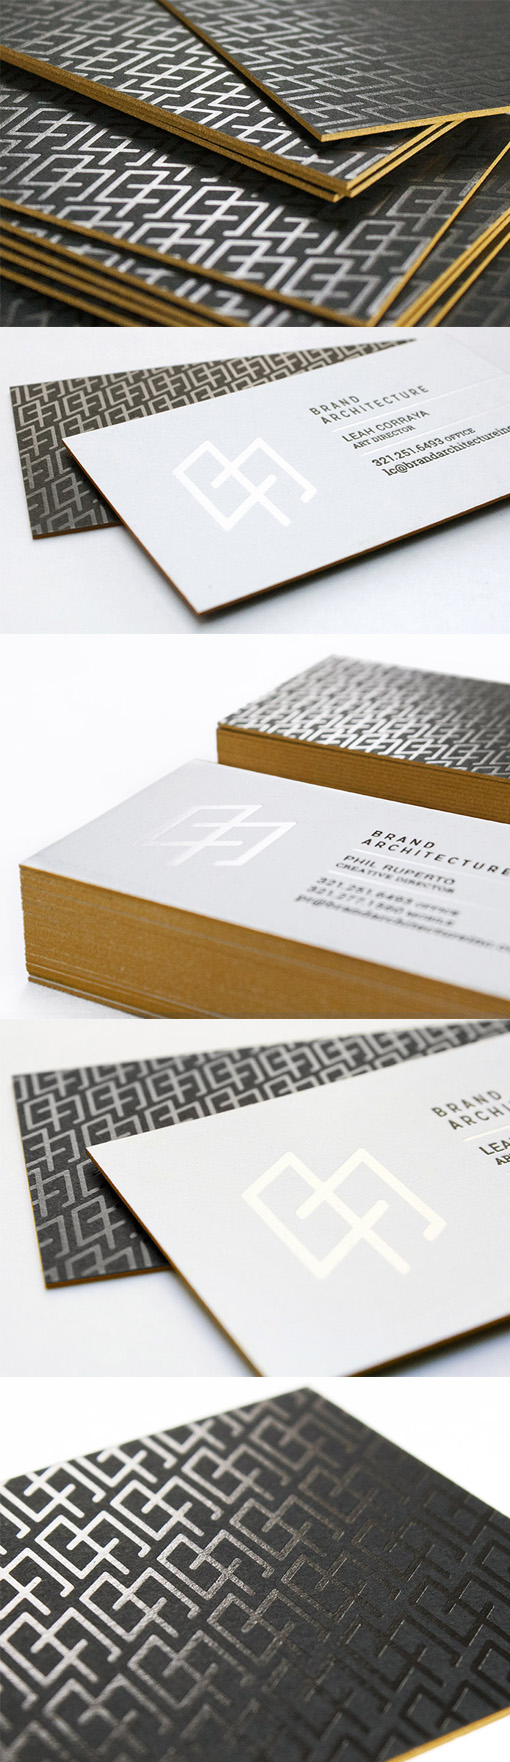 Sleek foil embossed black and white business card design for an sleek foil embossed black and white business card design for an architect magicingreecefo Choice Image